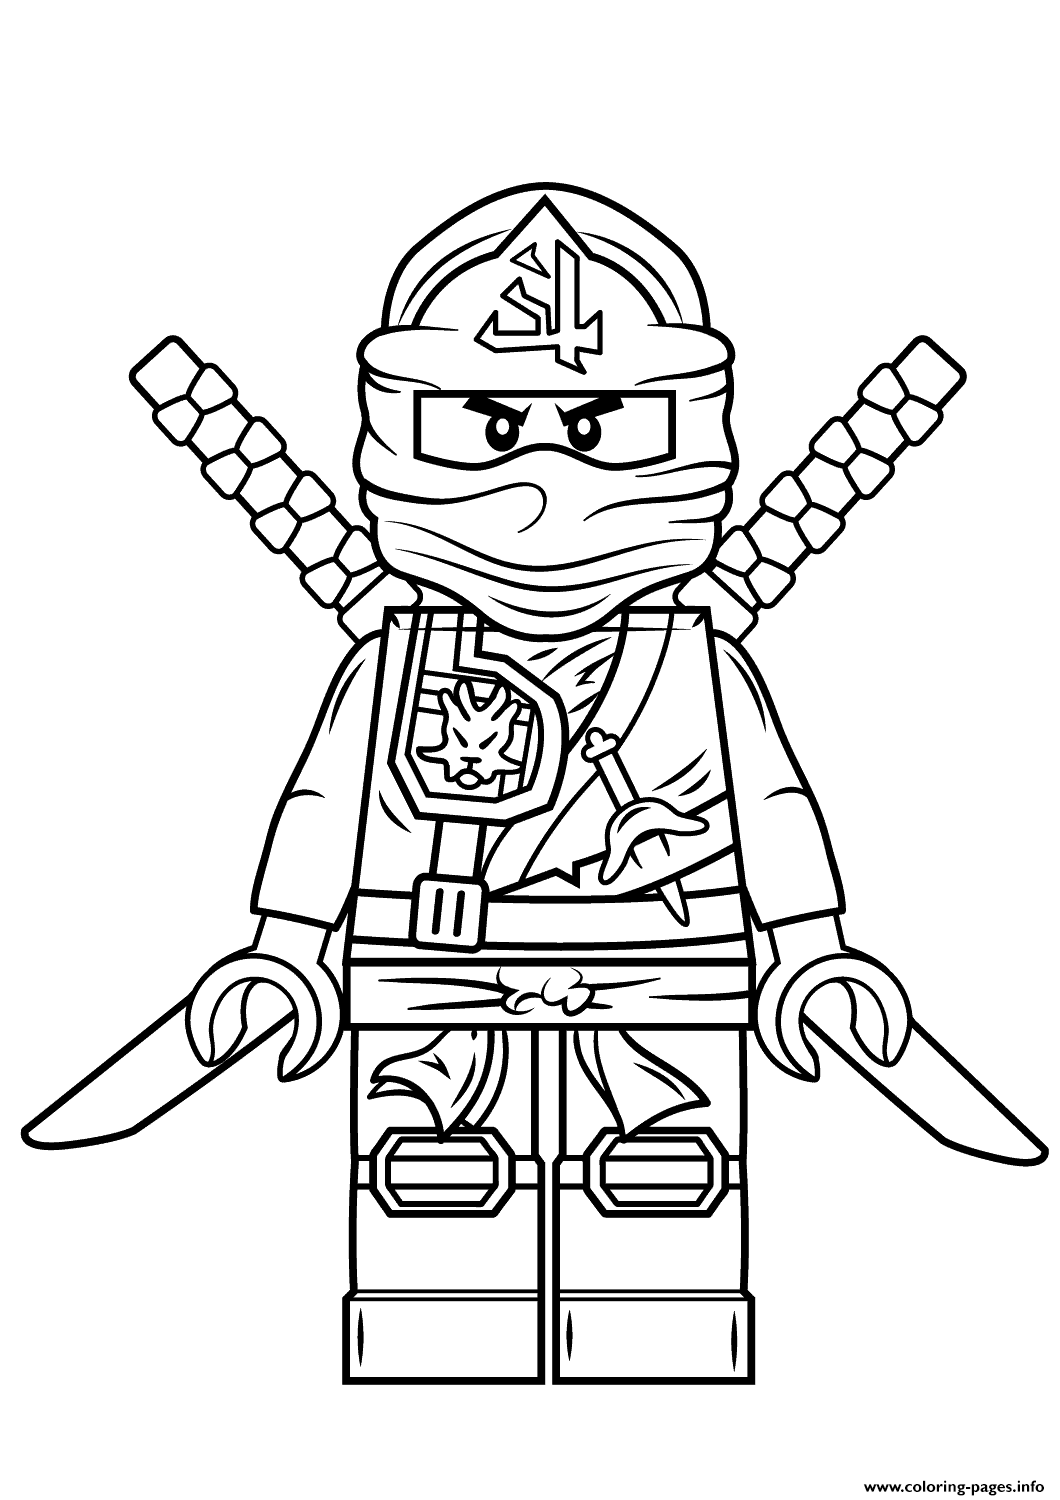 free coloring pages lego ninjago free coloring pages lego ninjago 51 - Ninjago Pictures To Color